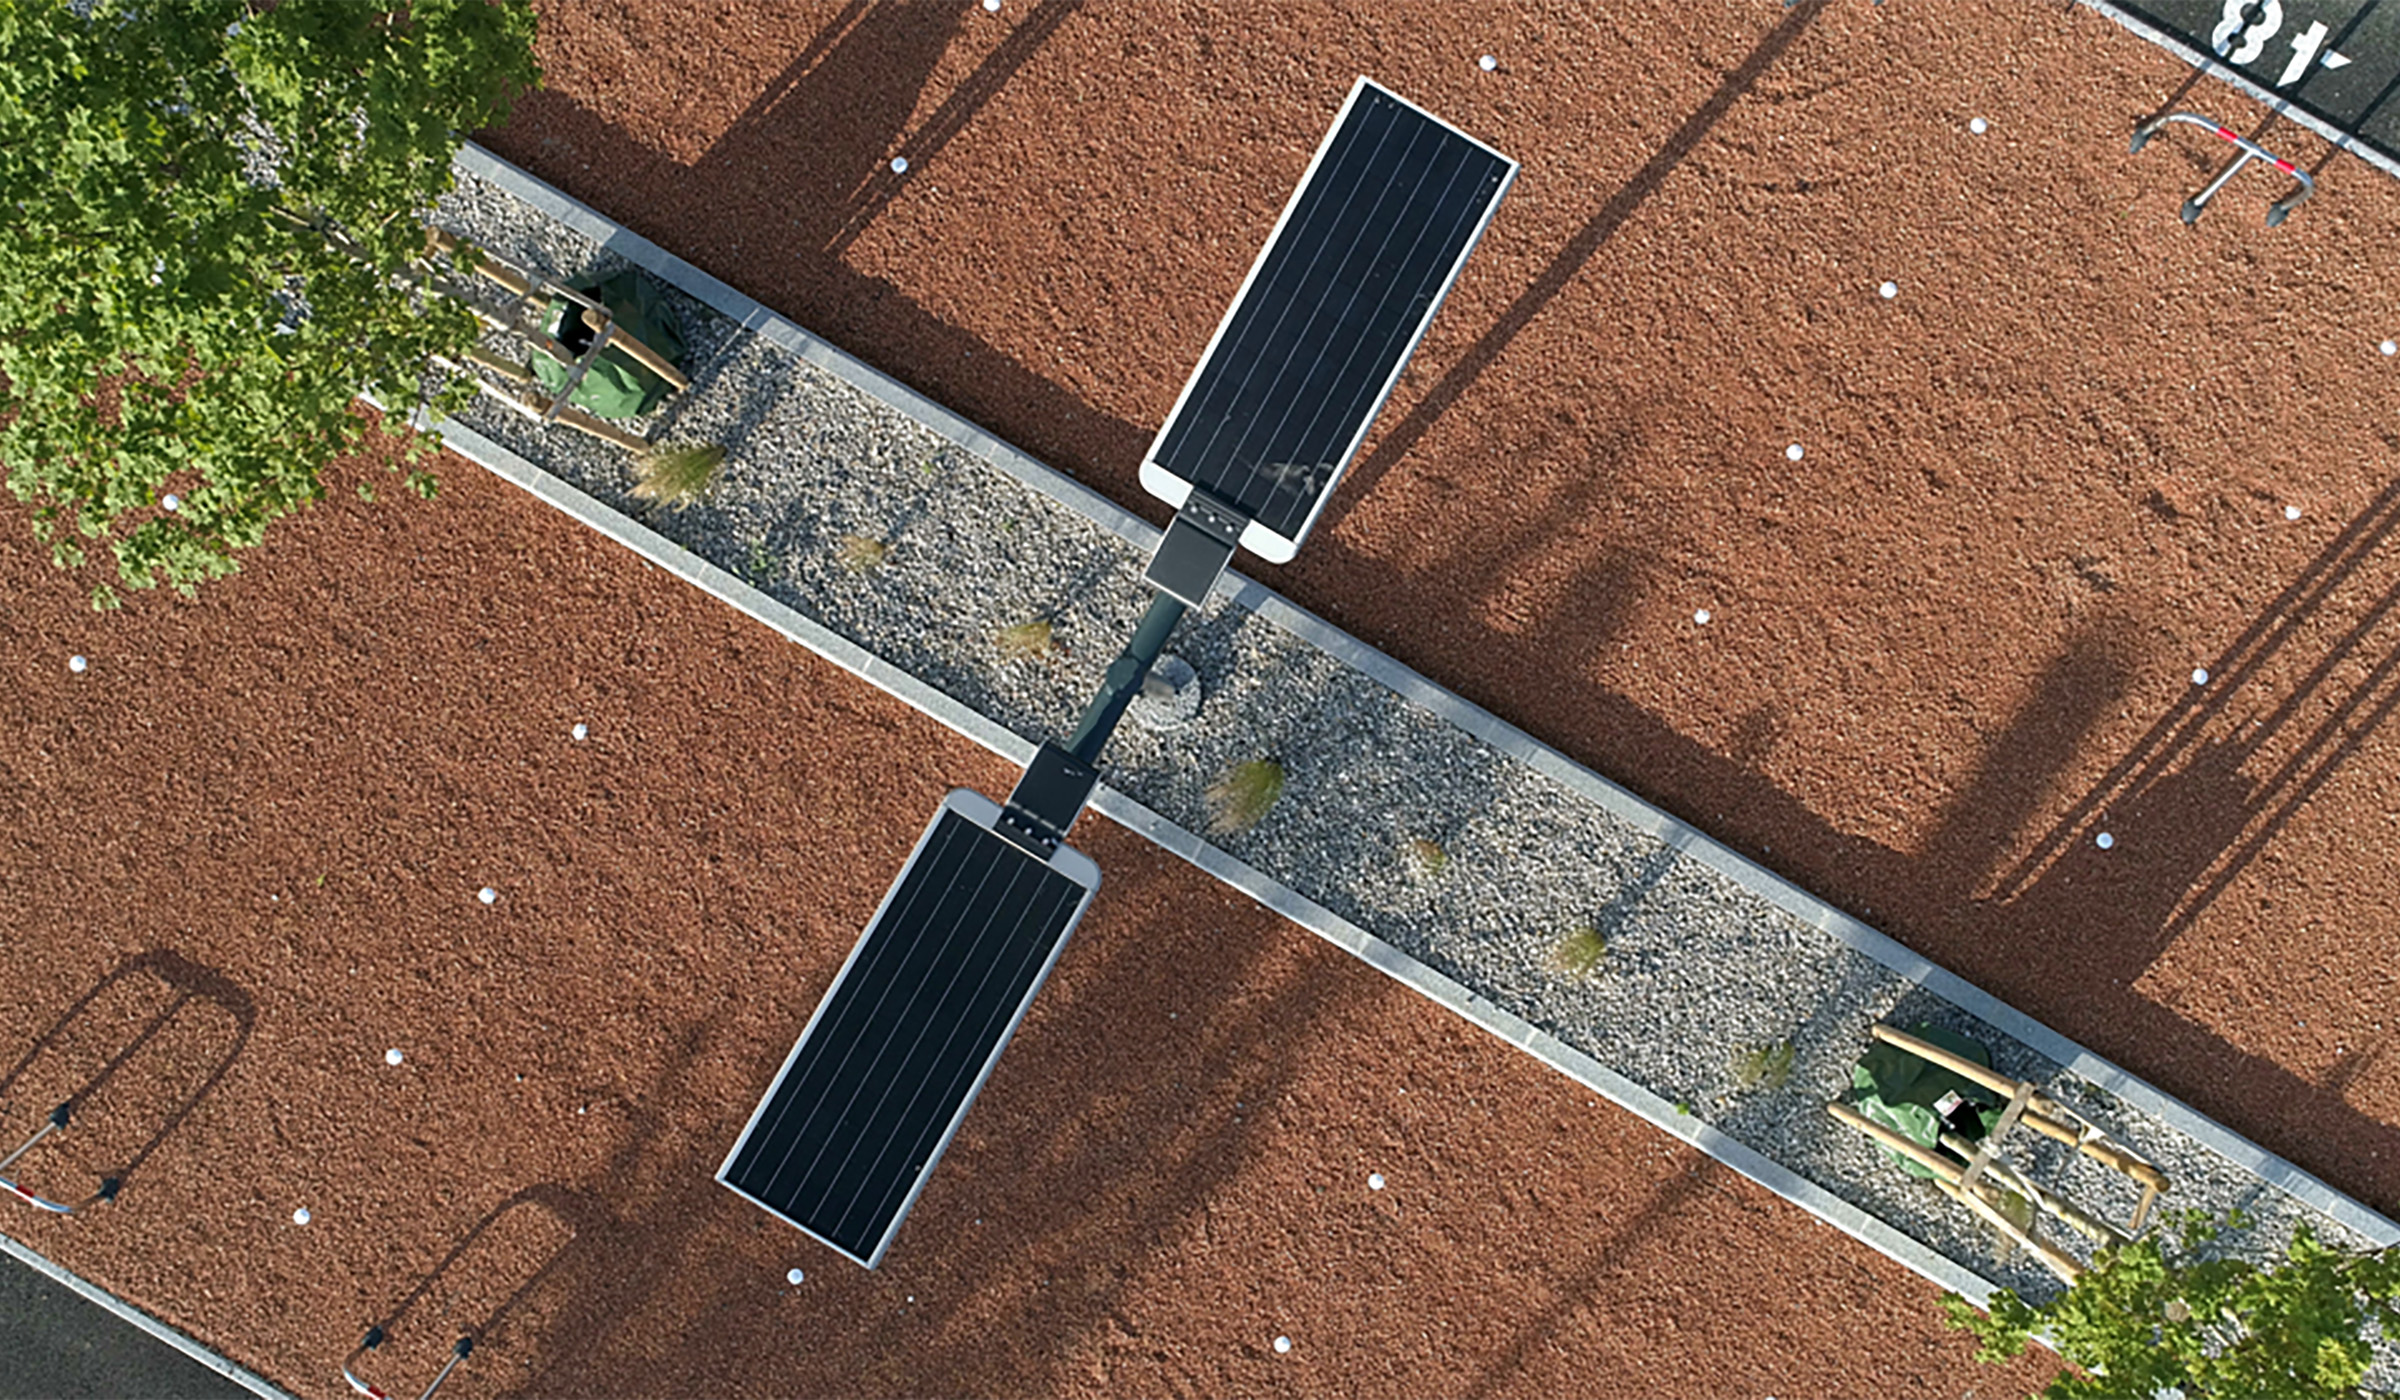 Solar street light 40 watts type installation in a parking lost, at South Part of France